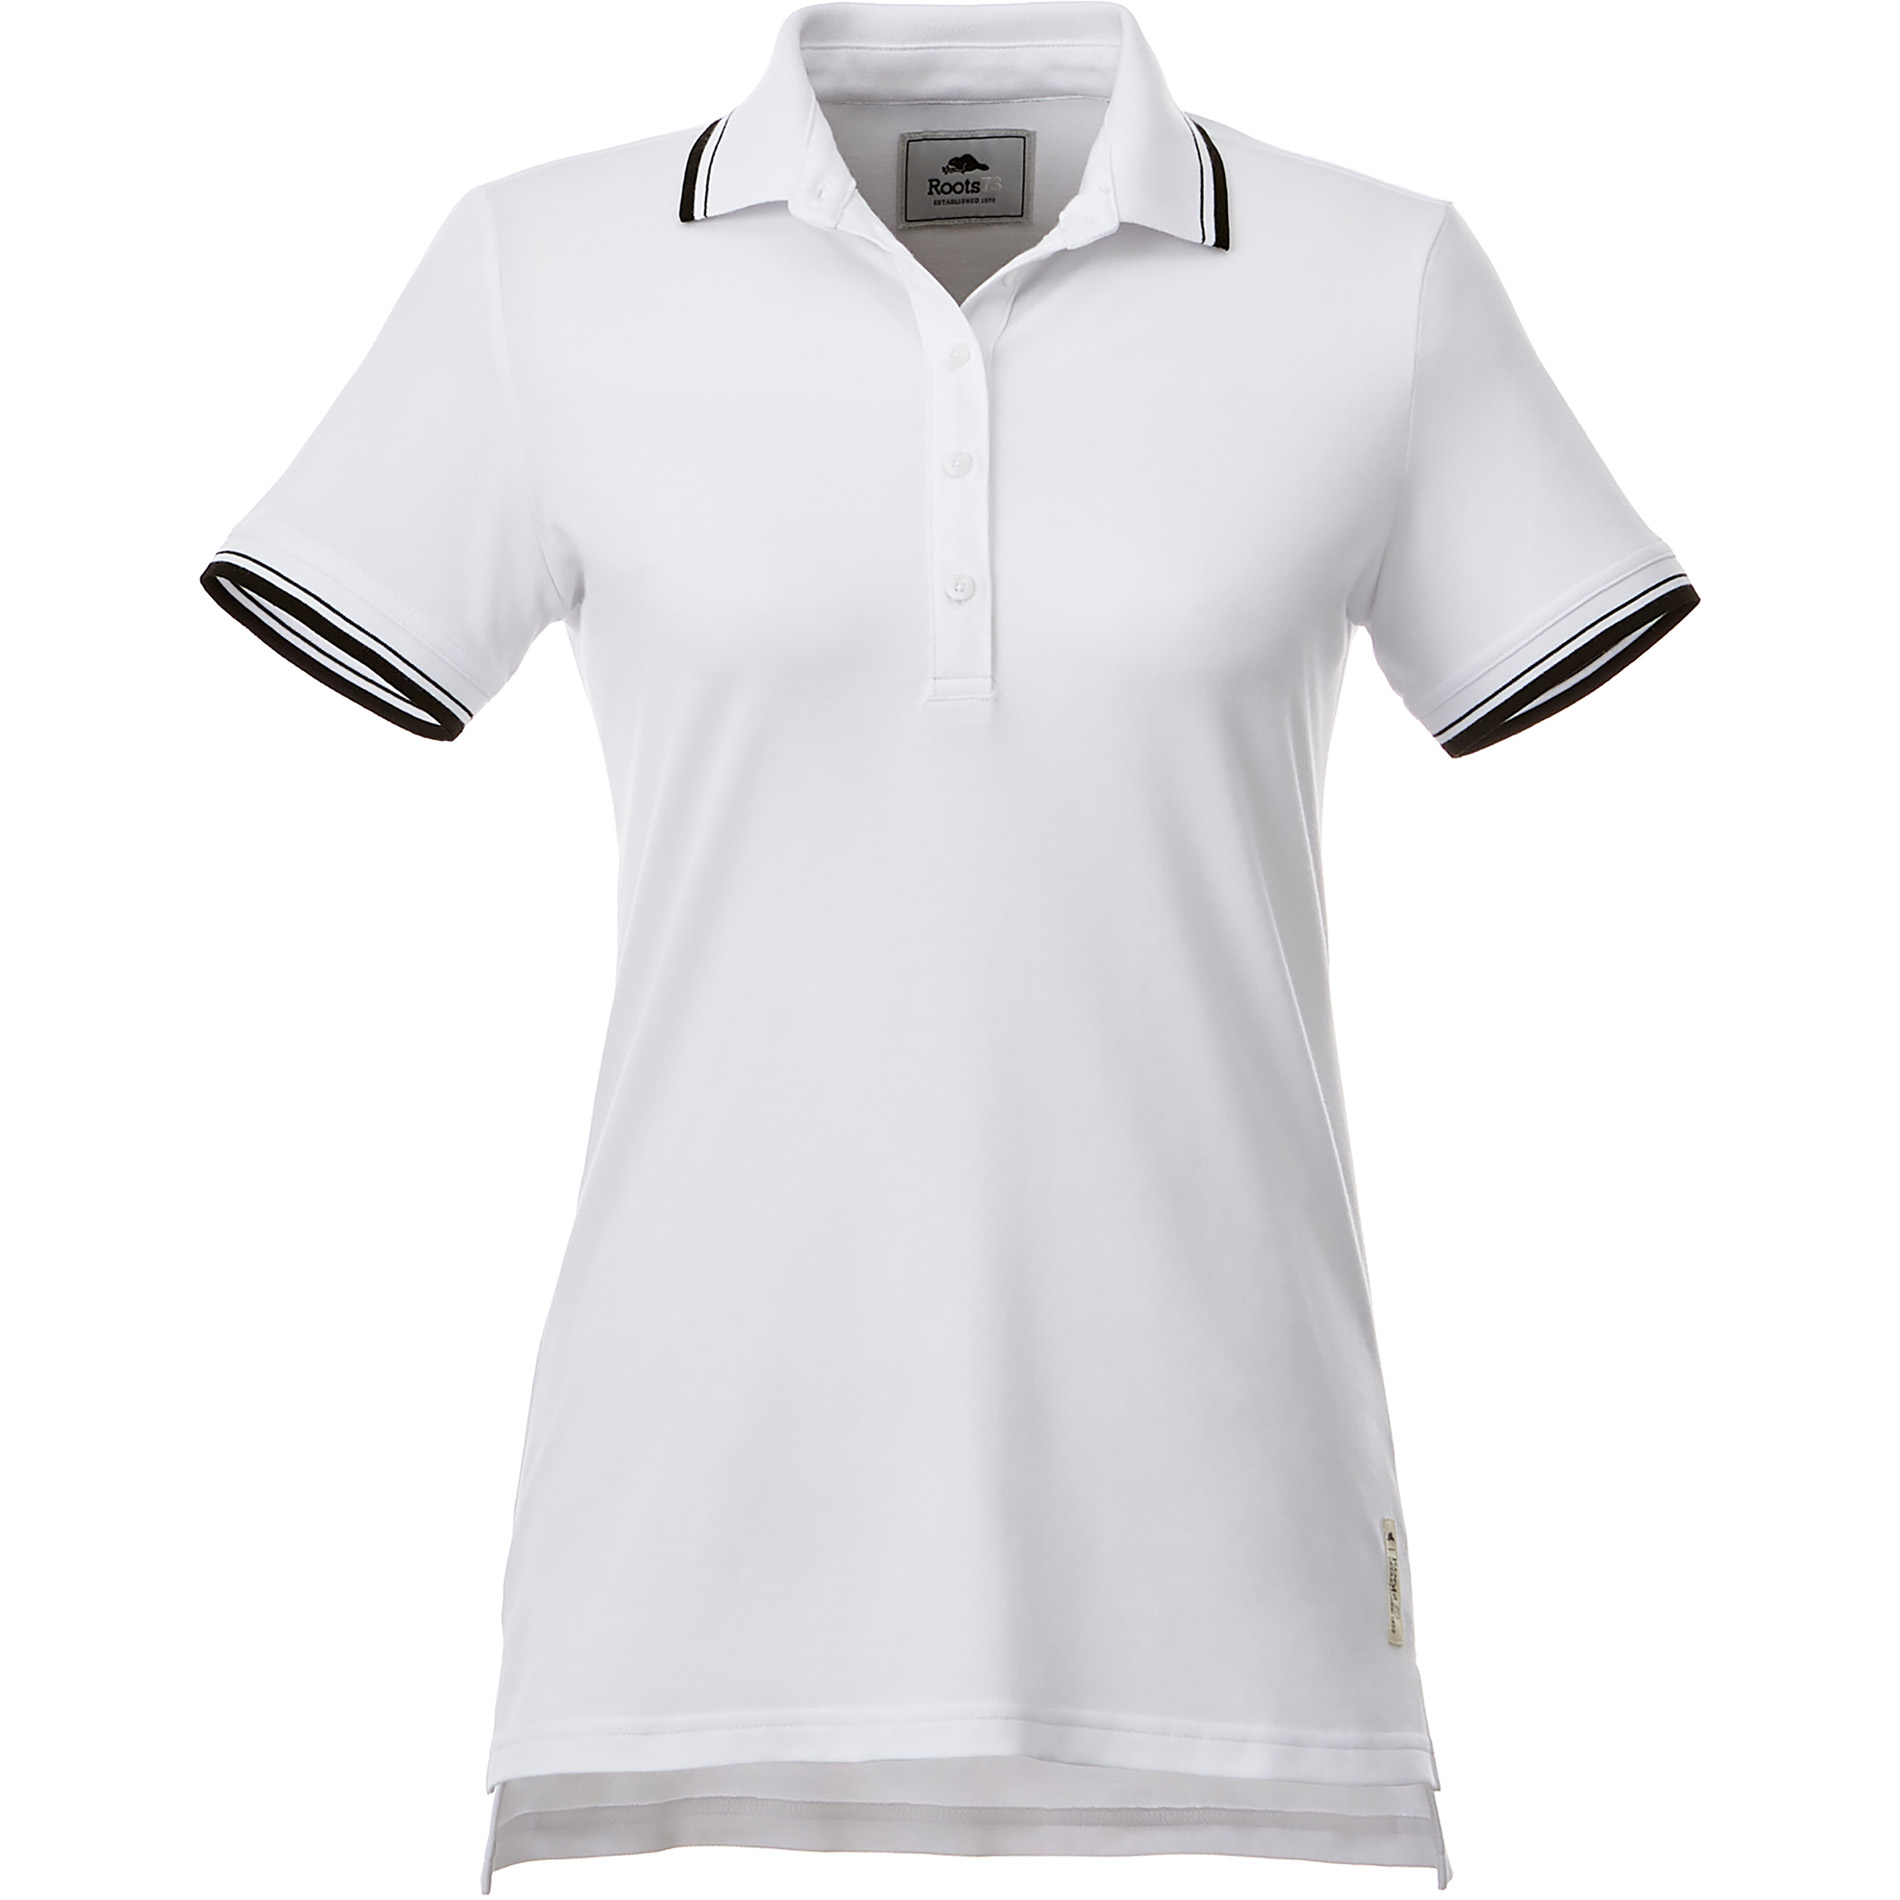 Roots73 TM96613 - W-LIMESTONE Roots73 SS Polo